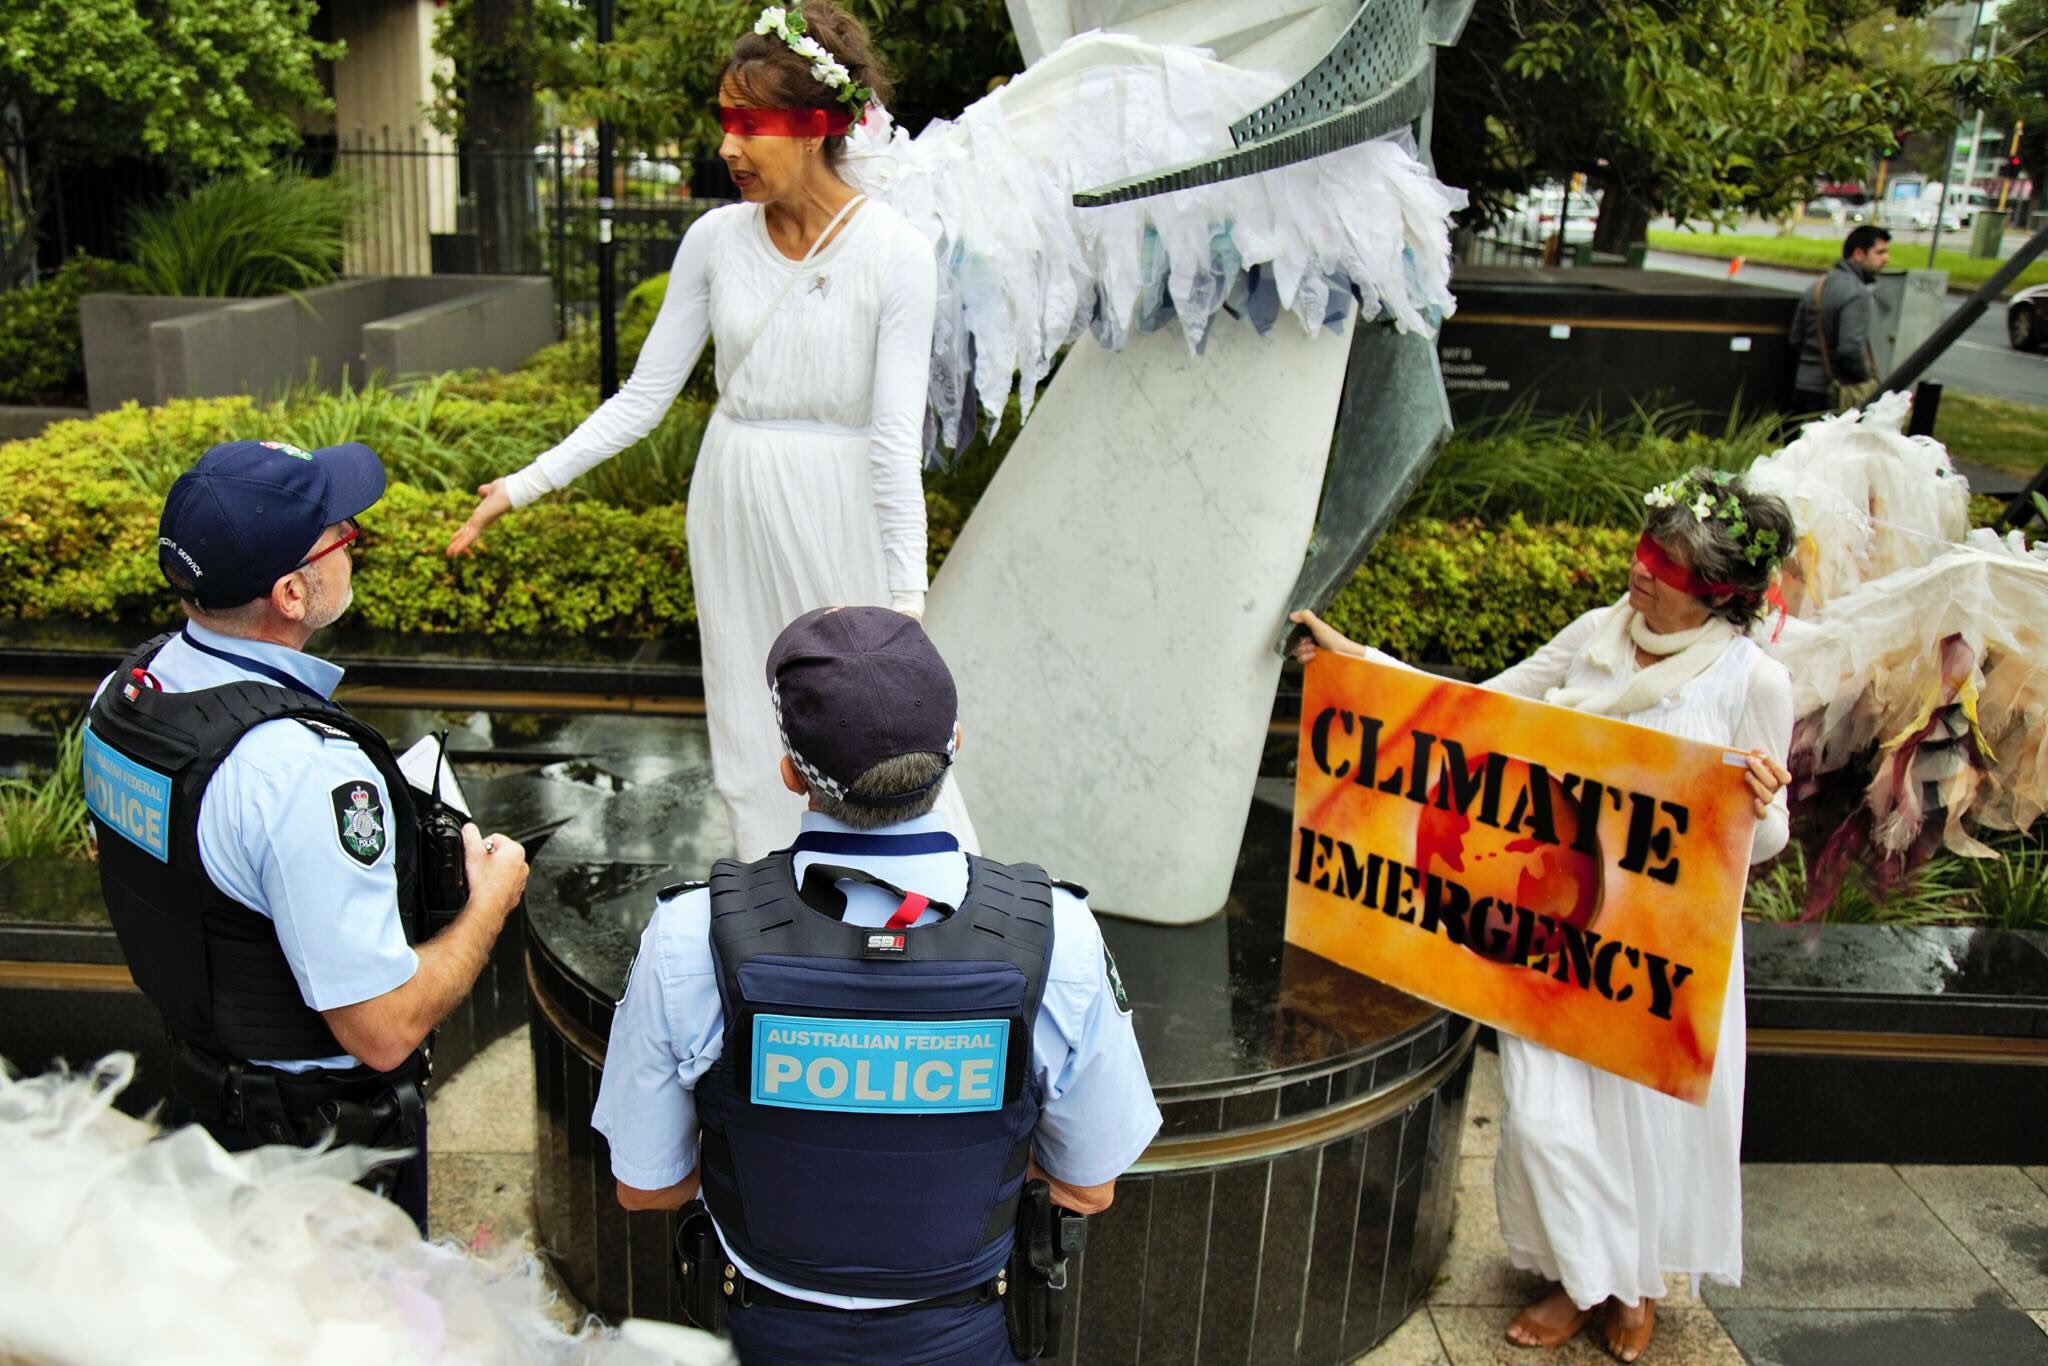 When staging our vigil at Melbourne's U.S. Consulate we discussed the unfolding #ClimateEmergency with some lovely police😇 #auspol #springst https://t.co/4p3Ztf5054